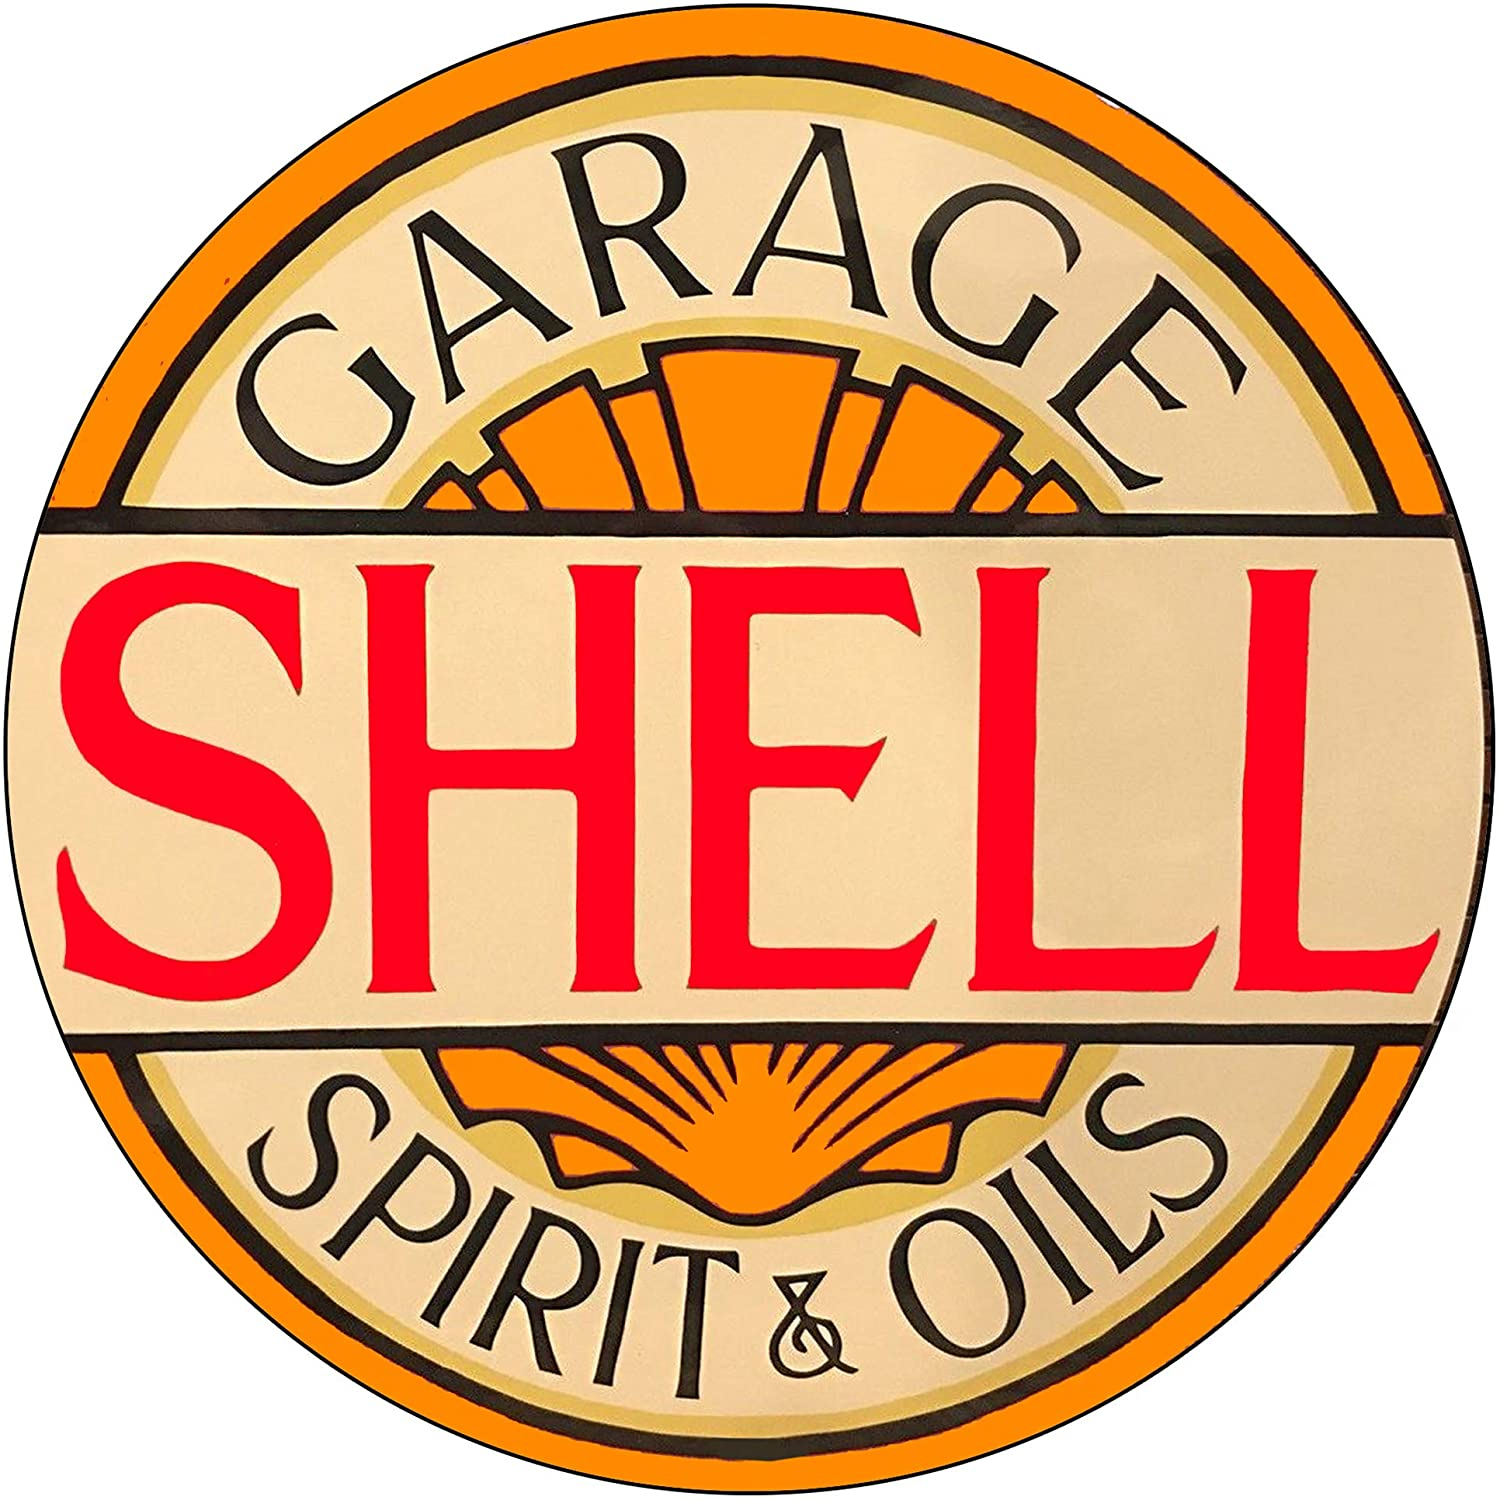 Brotherhood Vintage Gas Sign Reproduction Vintage Metal Signs Round Metal Tin Sign for Garage and Home 8 Inch Diameter – Shell Garage Spirit and Oils